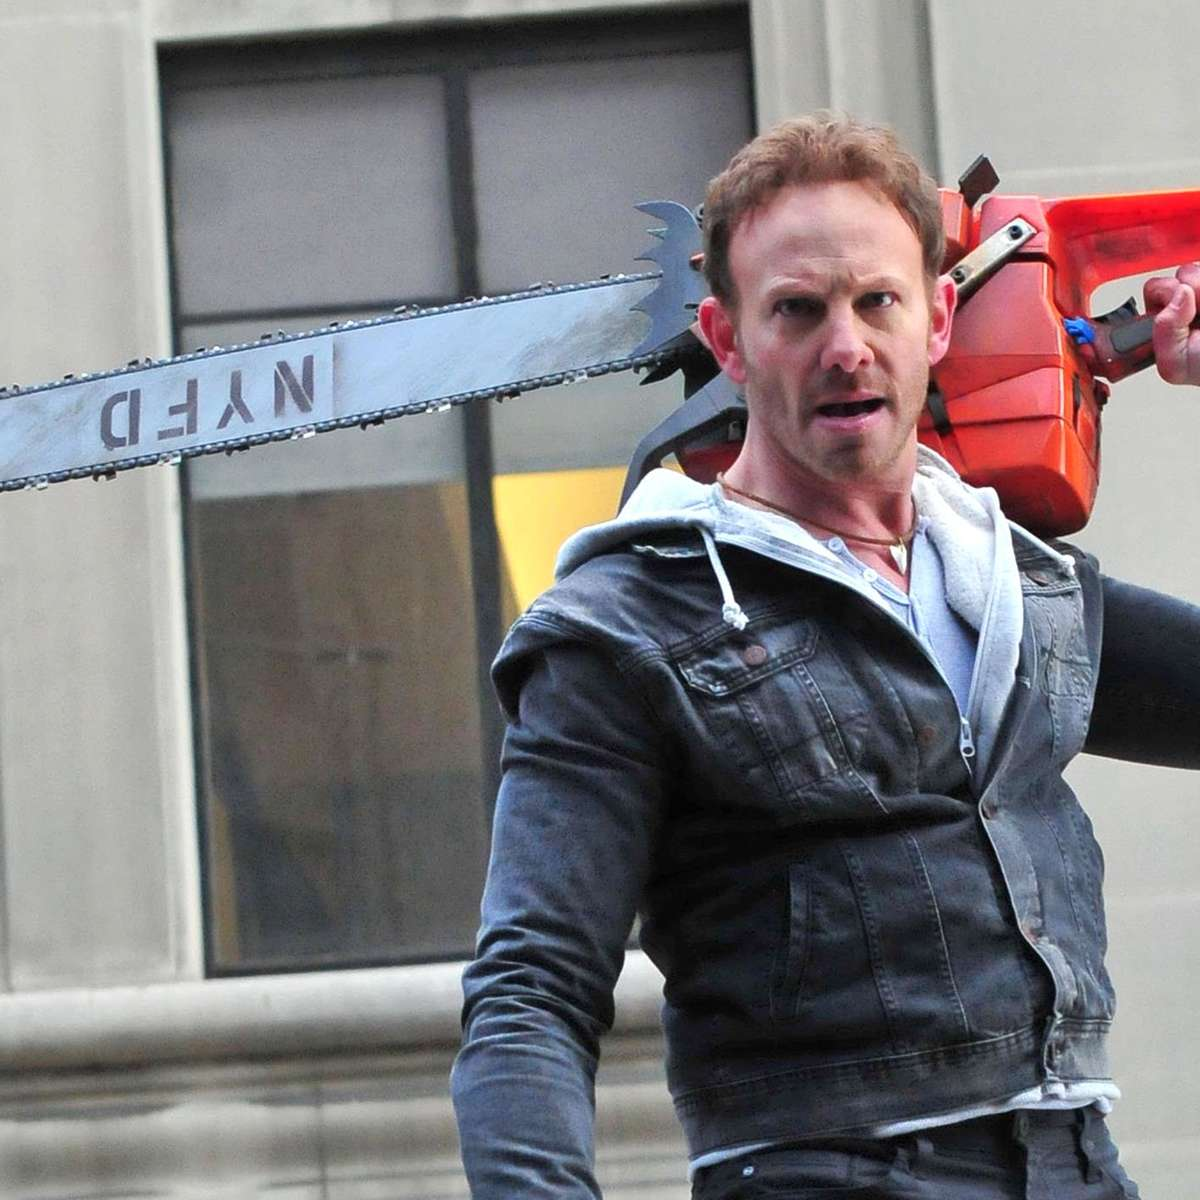 today-sharknado2-140312_796eb96bc663f9ccaf32b01d86899dca.jpg